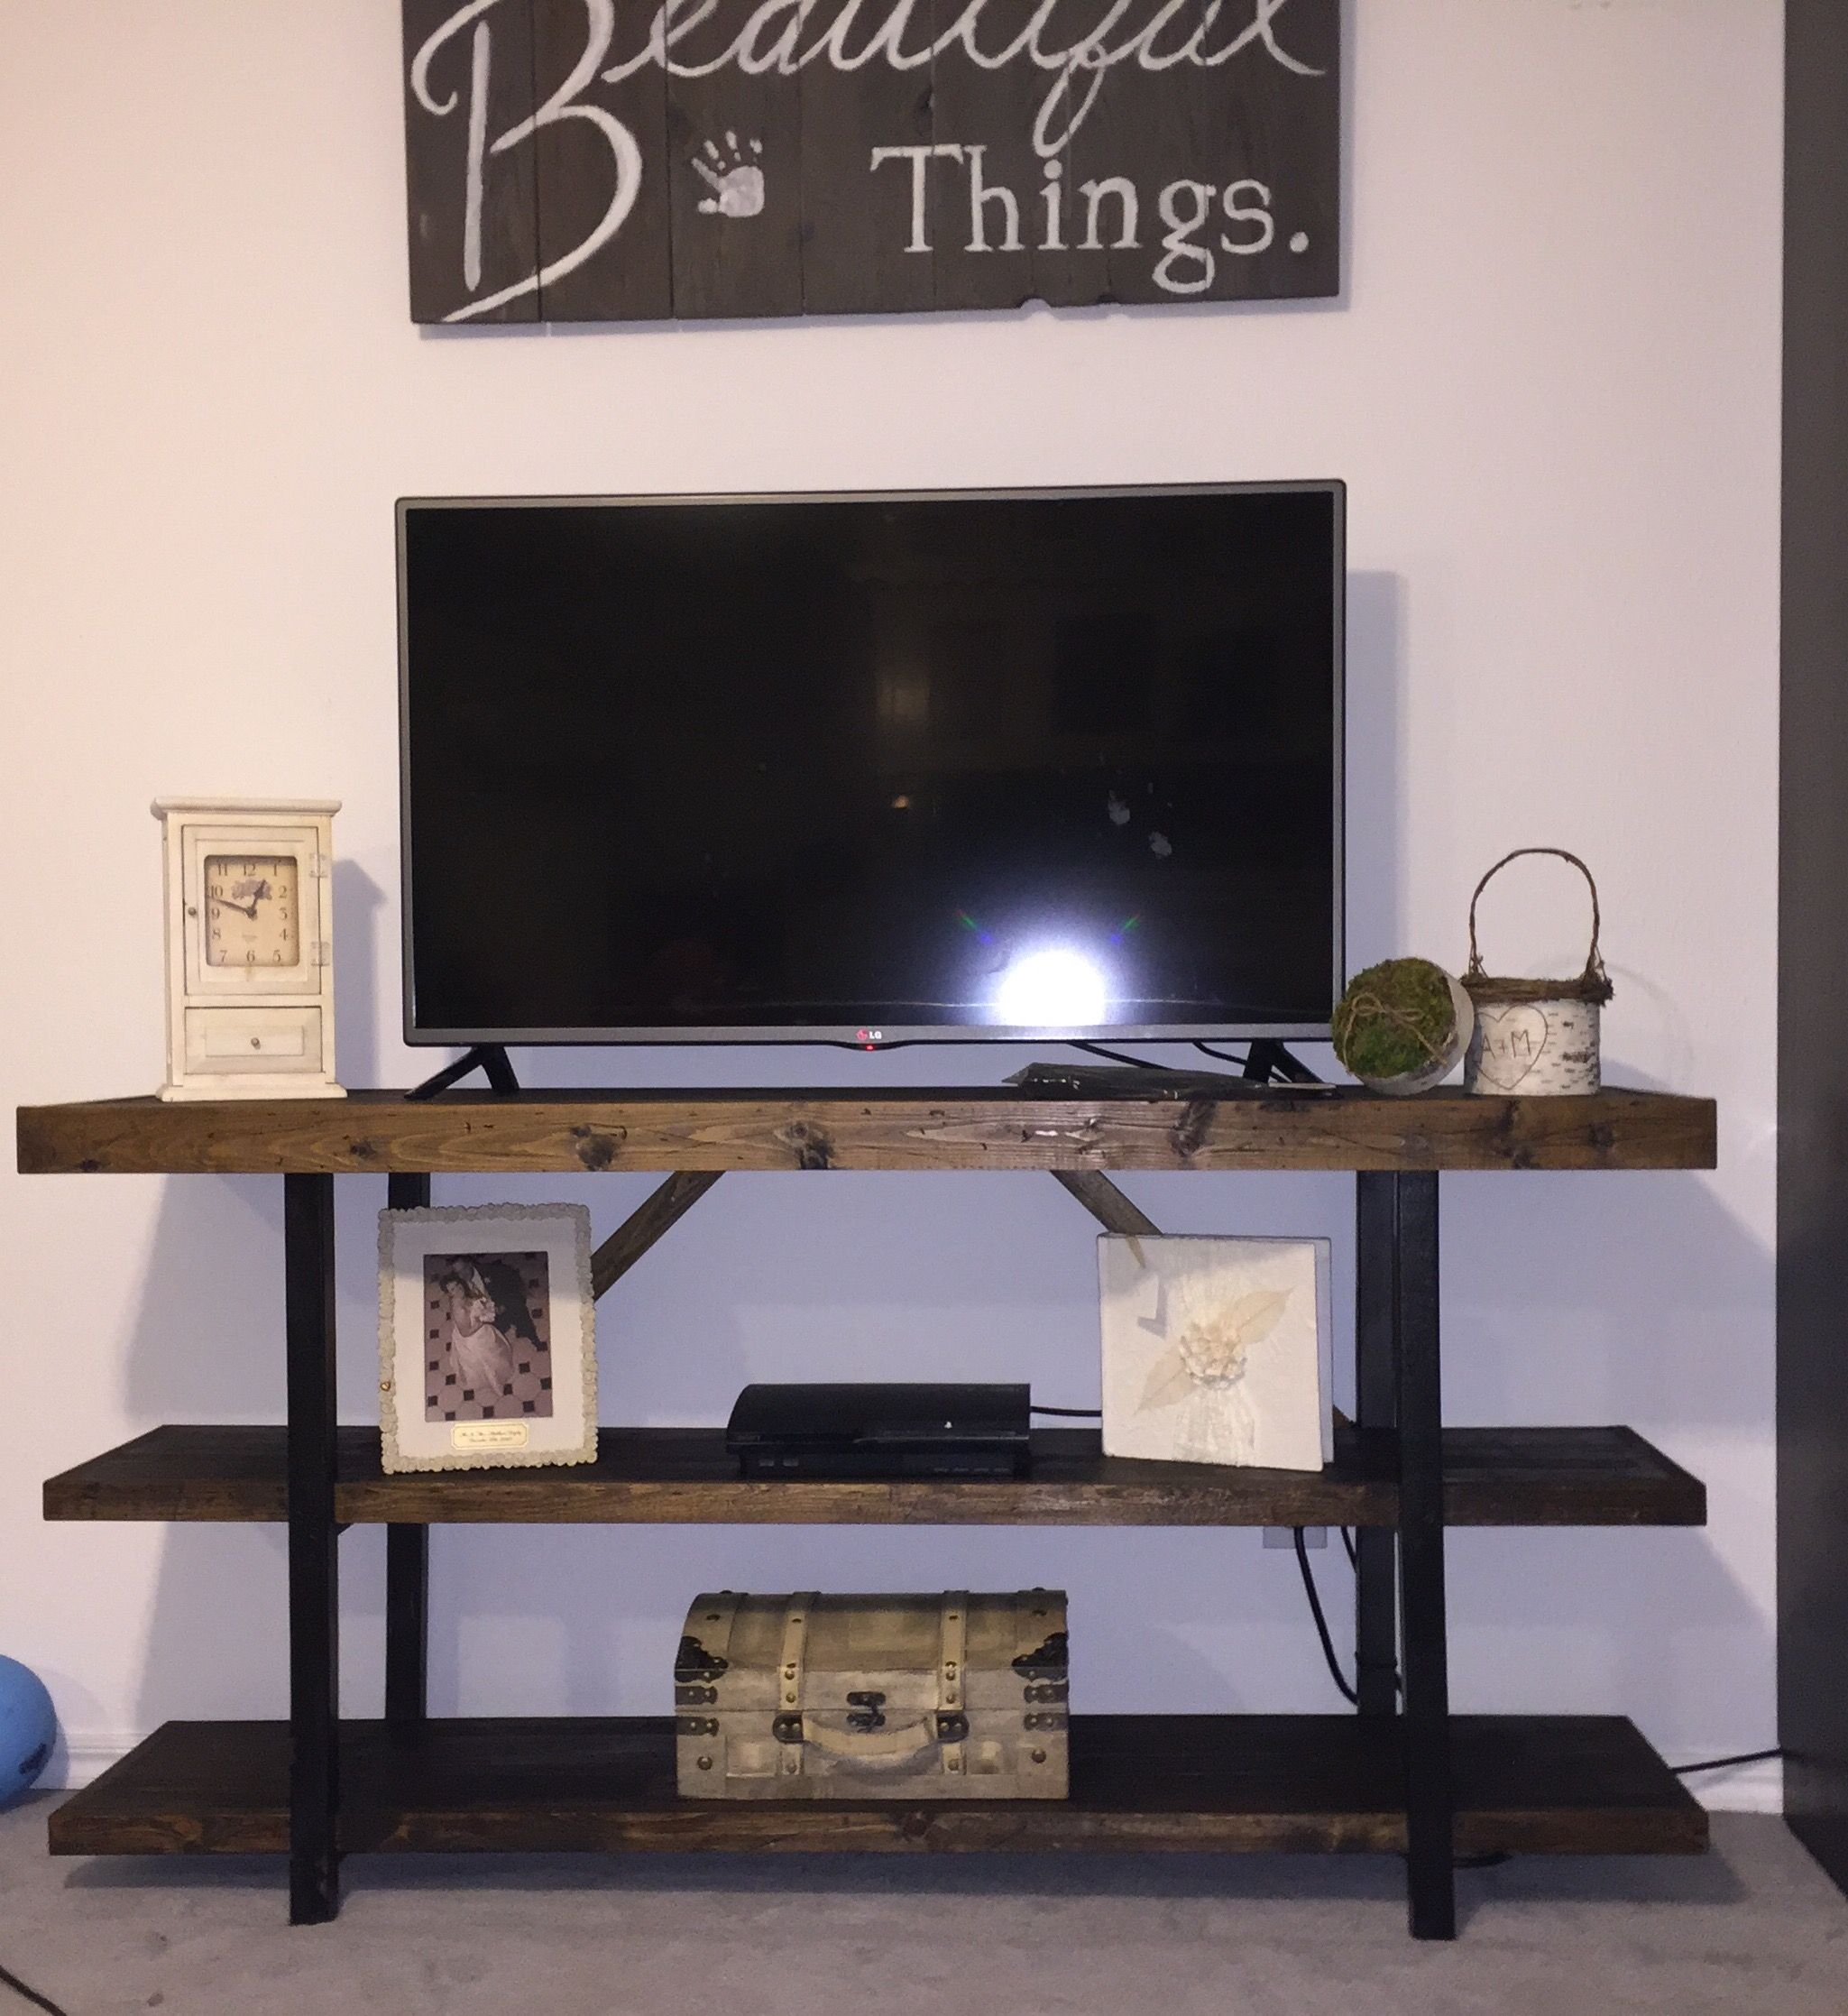 Pottery Barn Griffin TV console knock off I had crap 2x2s which